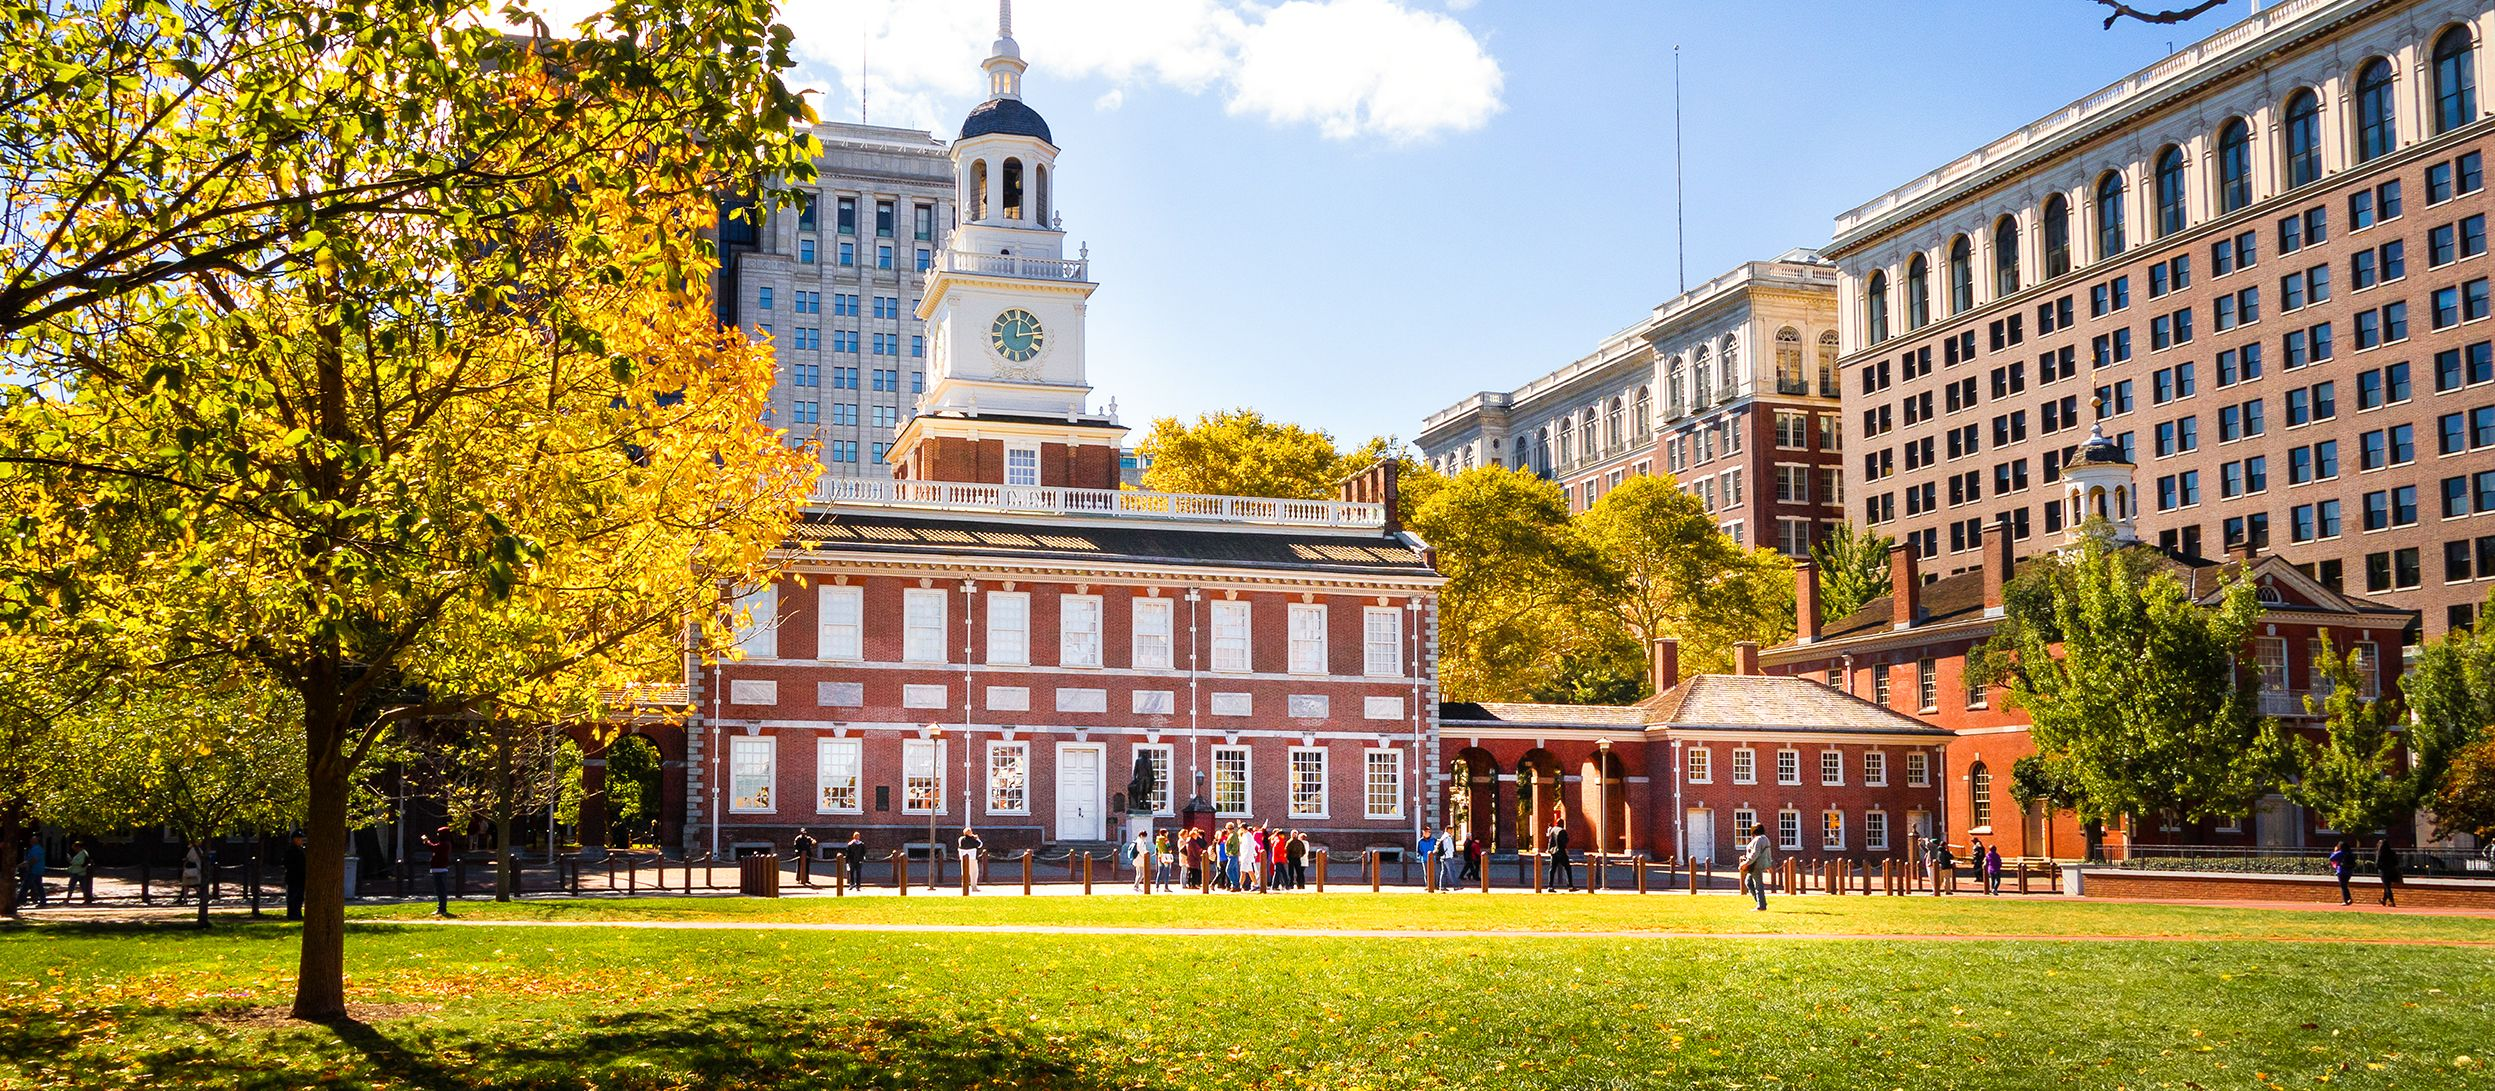 Die Independence Hall in Philadelphia